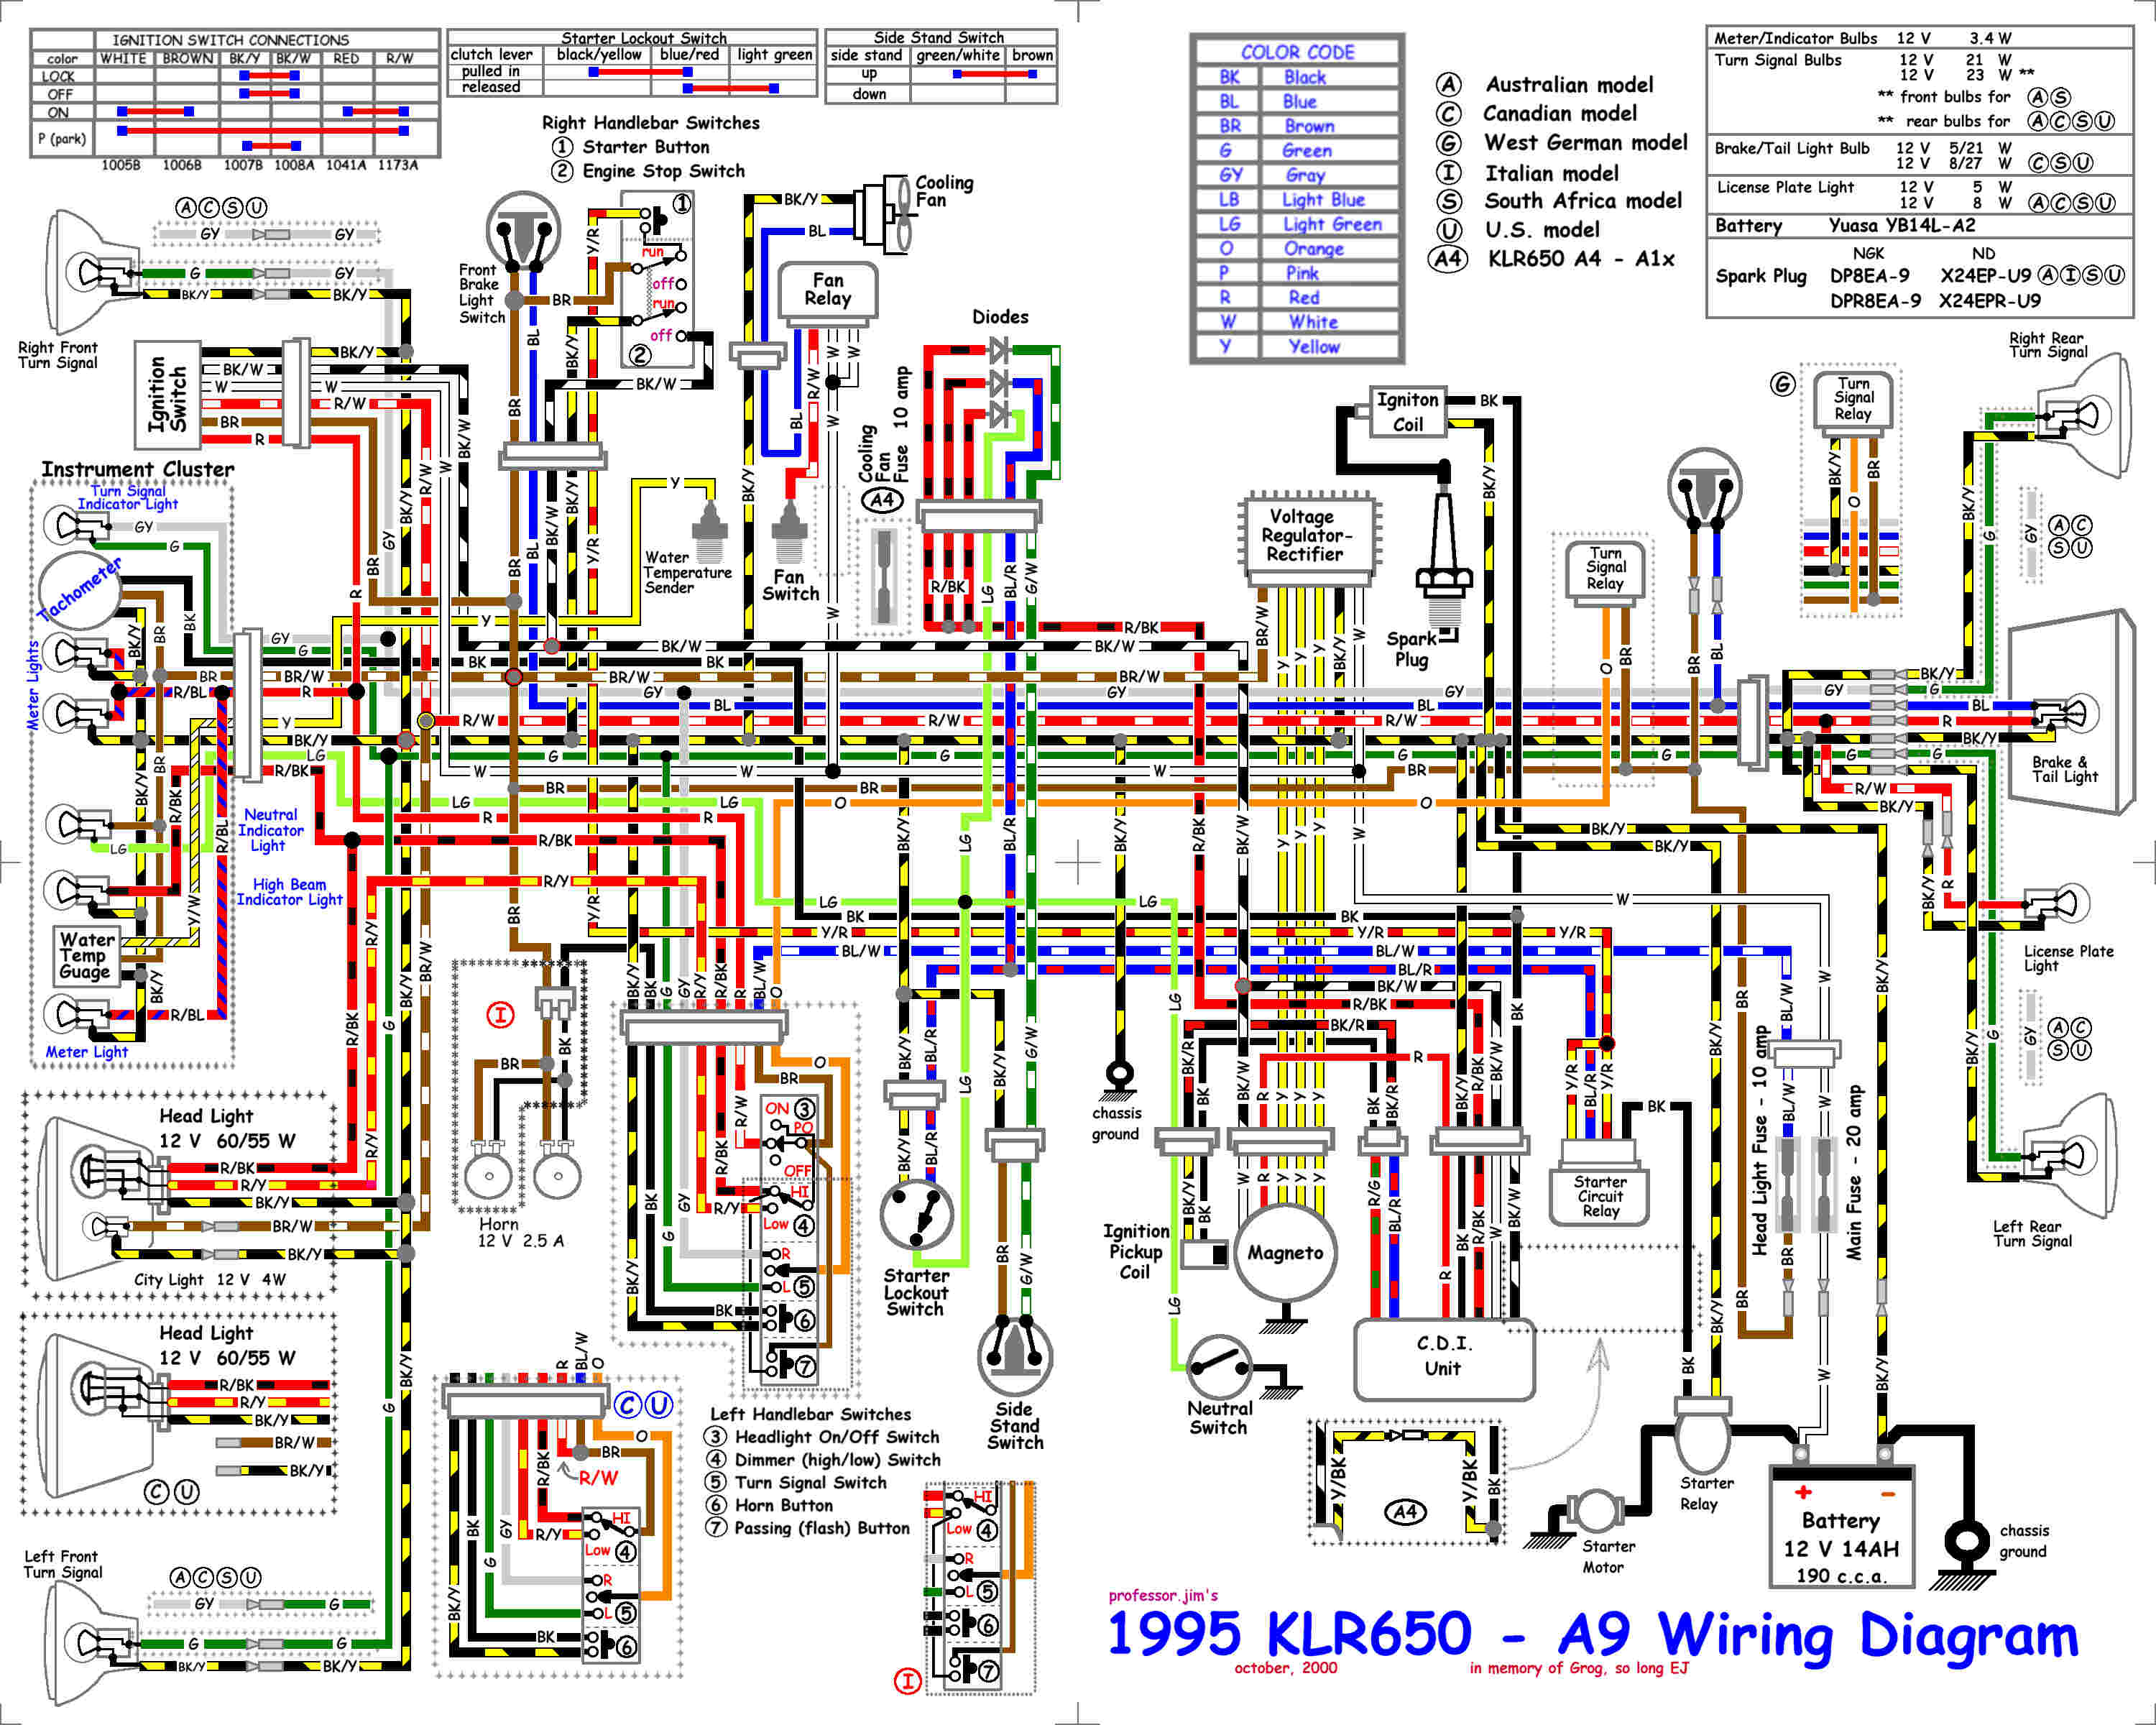 Wiring Diagram For 2008 Prowler 650 Arctic Cat | Wiring Diagram on electrical diagrams, sincgars radio configurations diagrams, electronic circuit diagrams, engine diagrams, snatch block diagrams, battery diagrams, smart car diagrams, lighting diagrams, internet of things diagrams, led circuit diagrams, hvac diagrams, series and parallel circuits diagrams, troubleshooting diagrams, switch diagrams, gmc fuse box diagrams, honda motorcycle repair diagrams, motor diagrams, friendship bracelet diagrams, pinout diagrams, transformer diagrams,